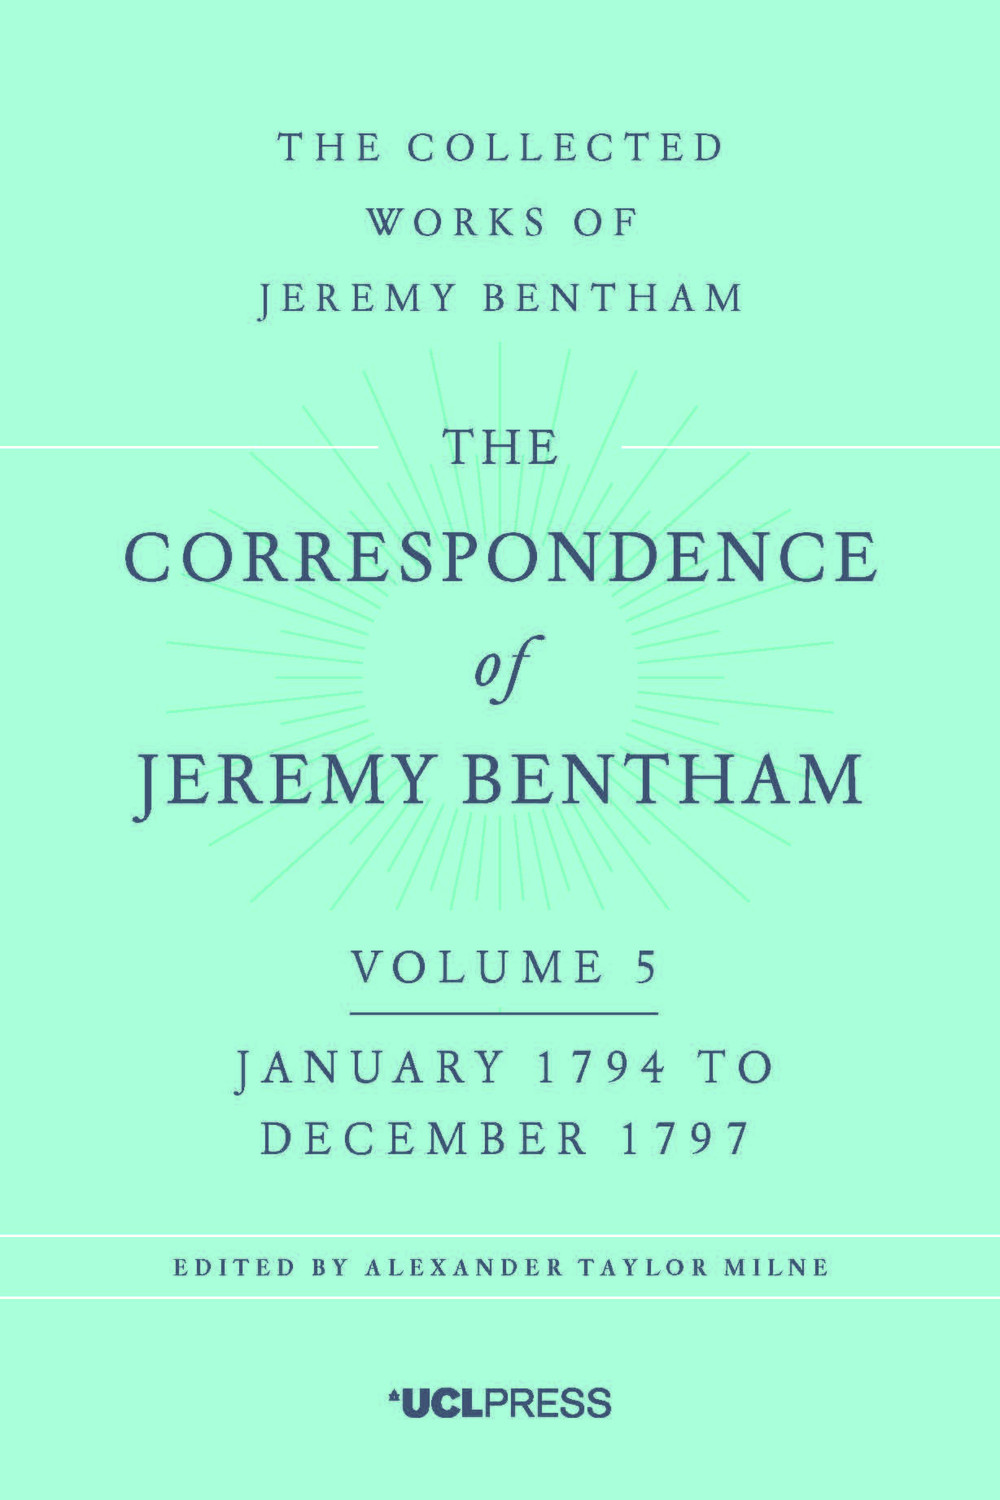 The Correspondence of Jeremy Bentham, Volume 5